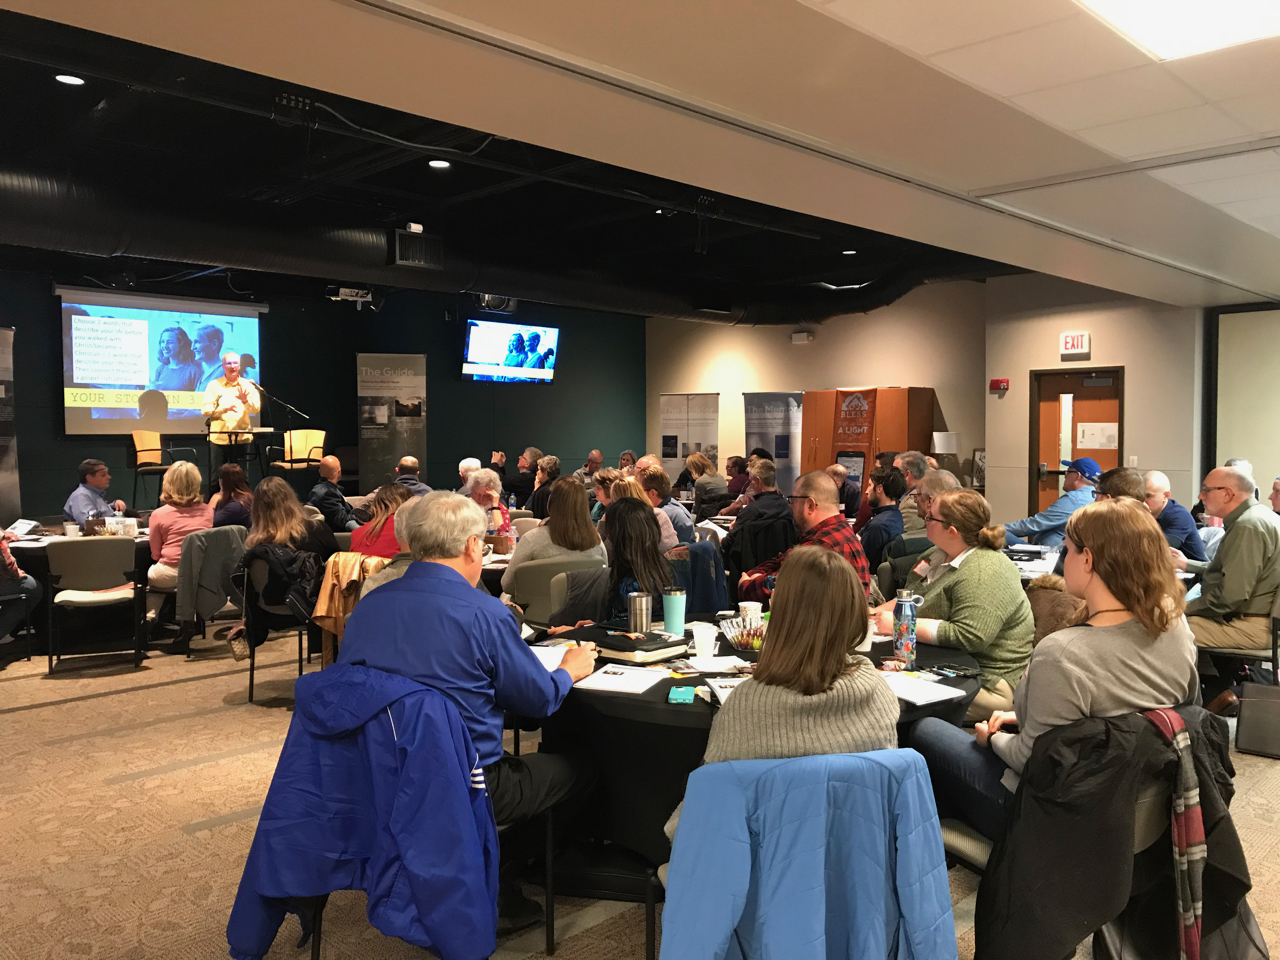 In Lenexa, KS at Westside Family Church we've trained 55 believers to start spiritual conversations where they work, live and play. This coming Sunday Westside Church will host another training offering this opportunity for the whole church community.